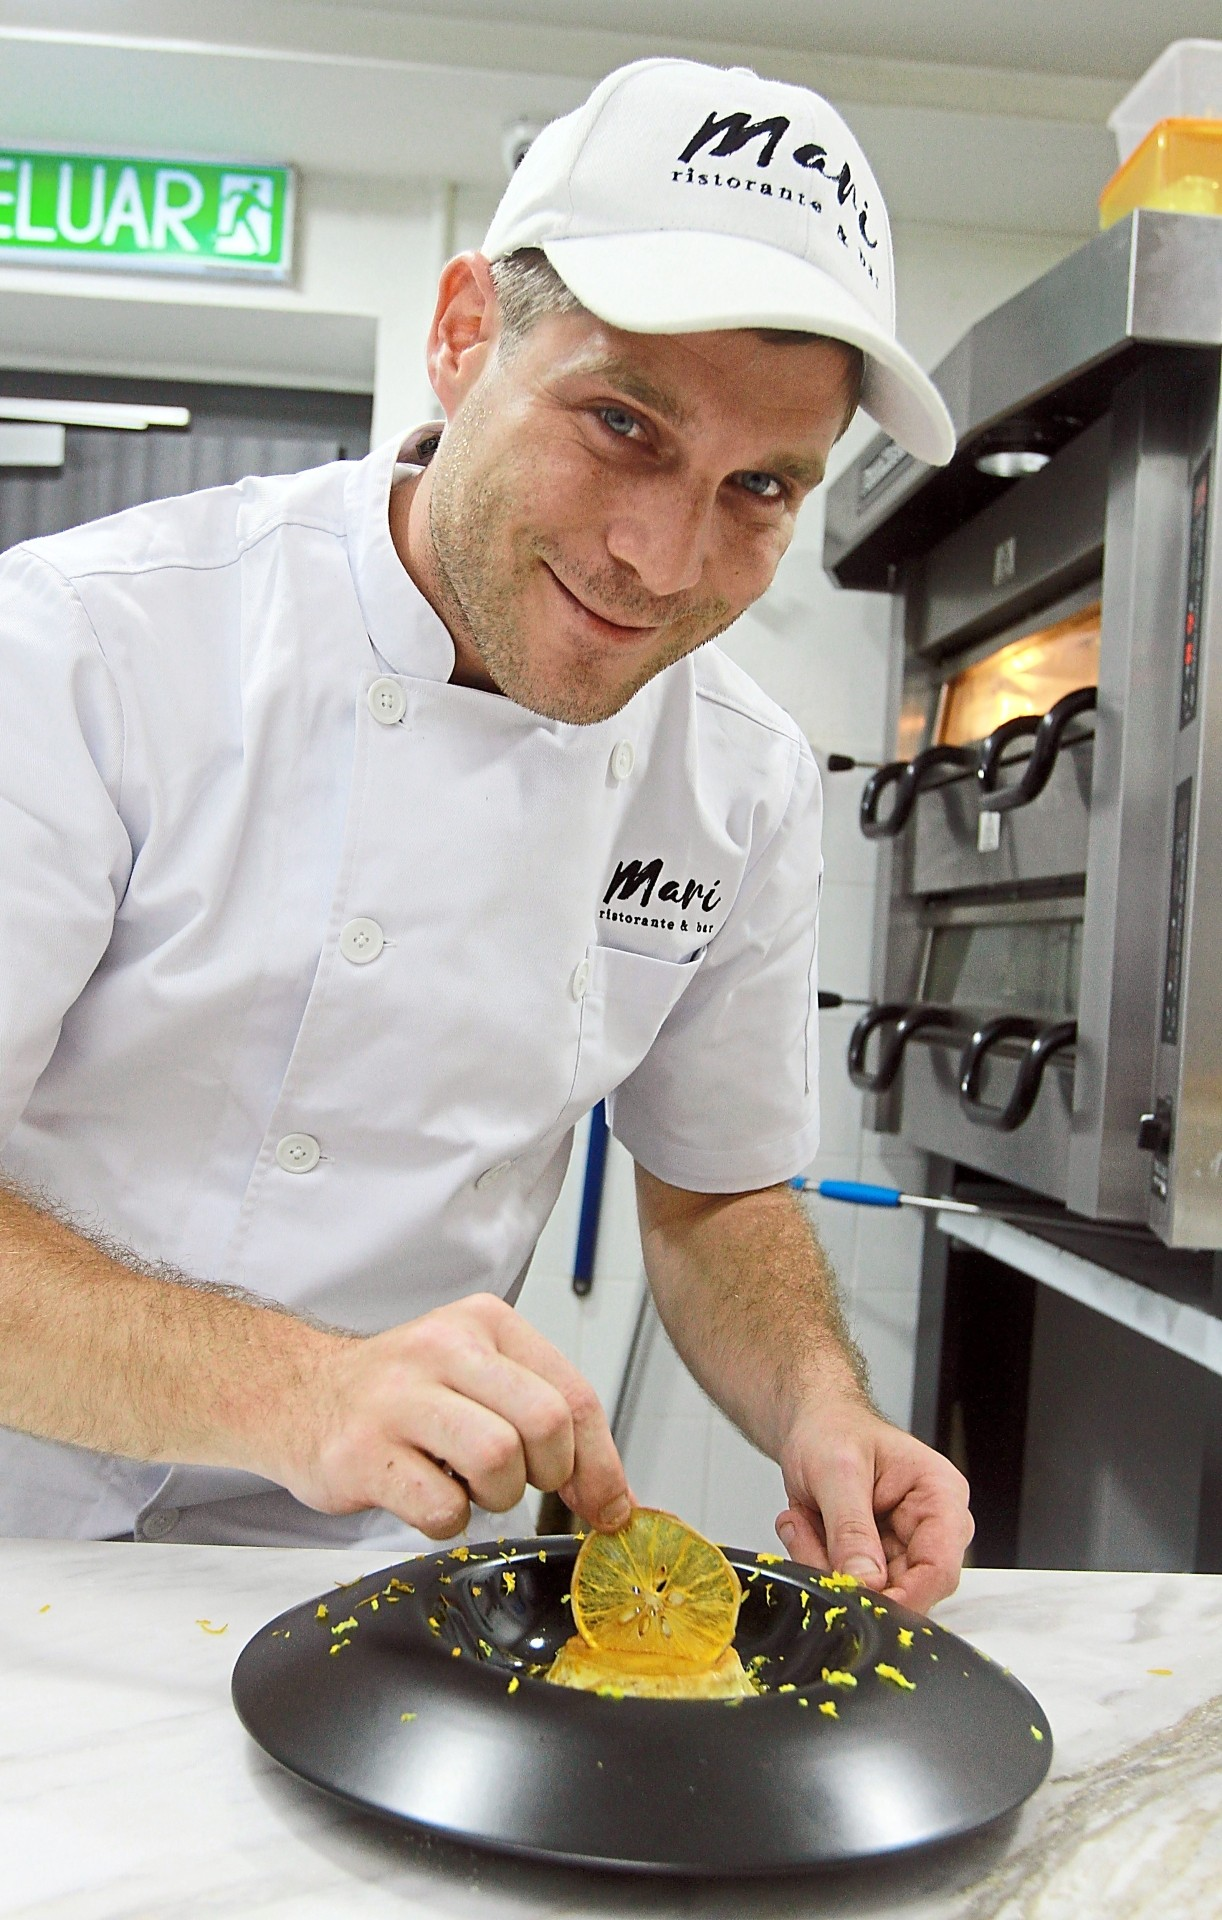 Grandi takes pleasure in concocting new combinations as well as flavours to surprise diners.